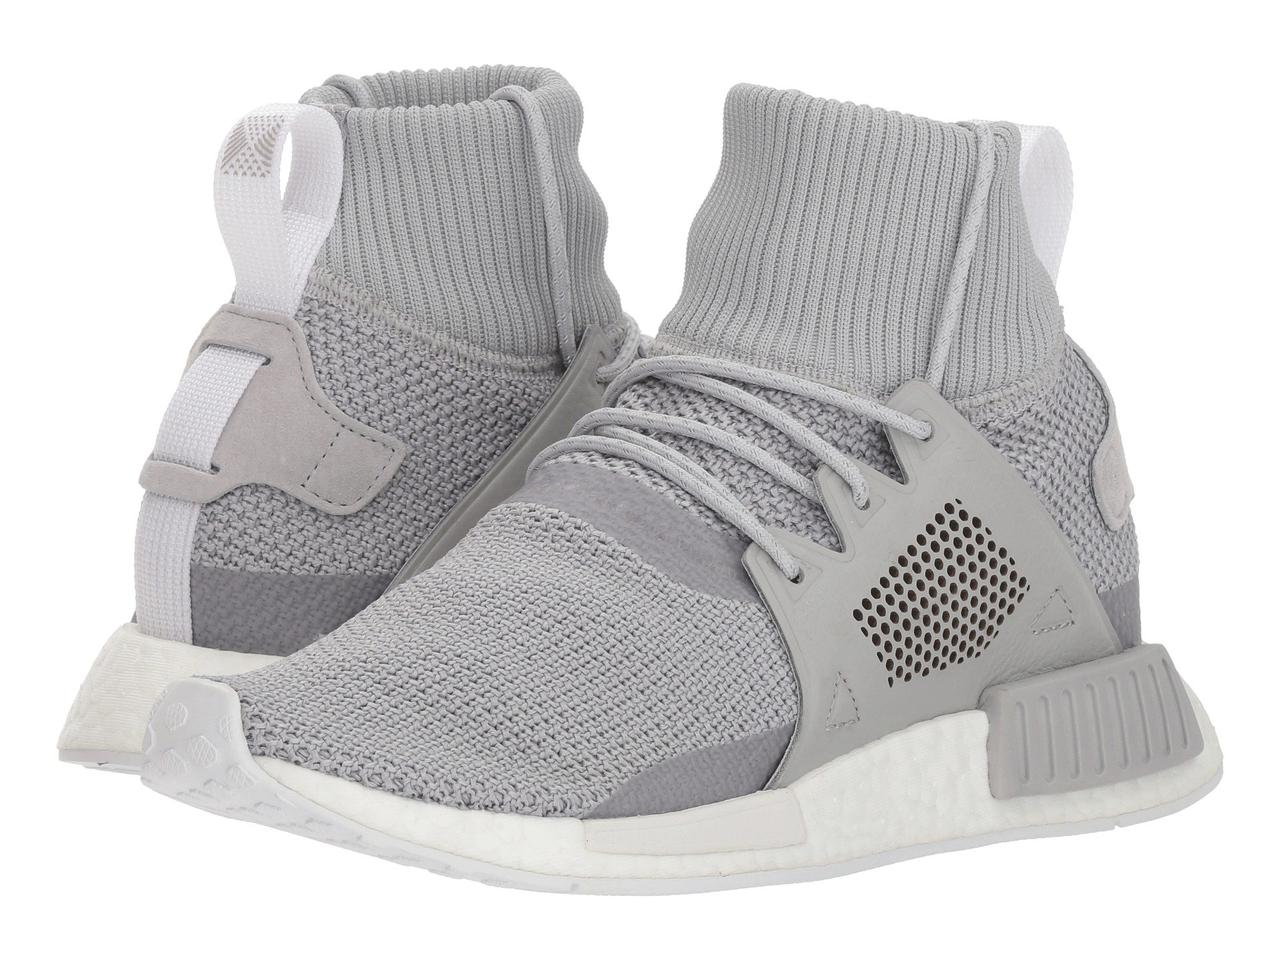 more photos 87e69 fcb29 Кроссовки/Кеды (Оригинал) adidas NMD-XR1 Winter Gretwo,Gretwo,Gretwo